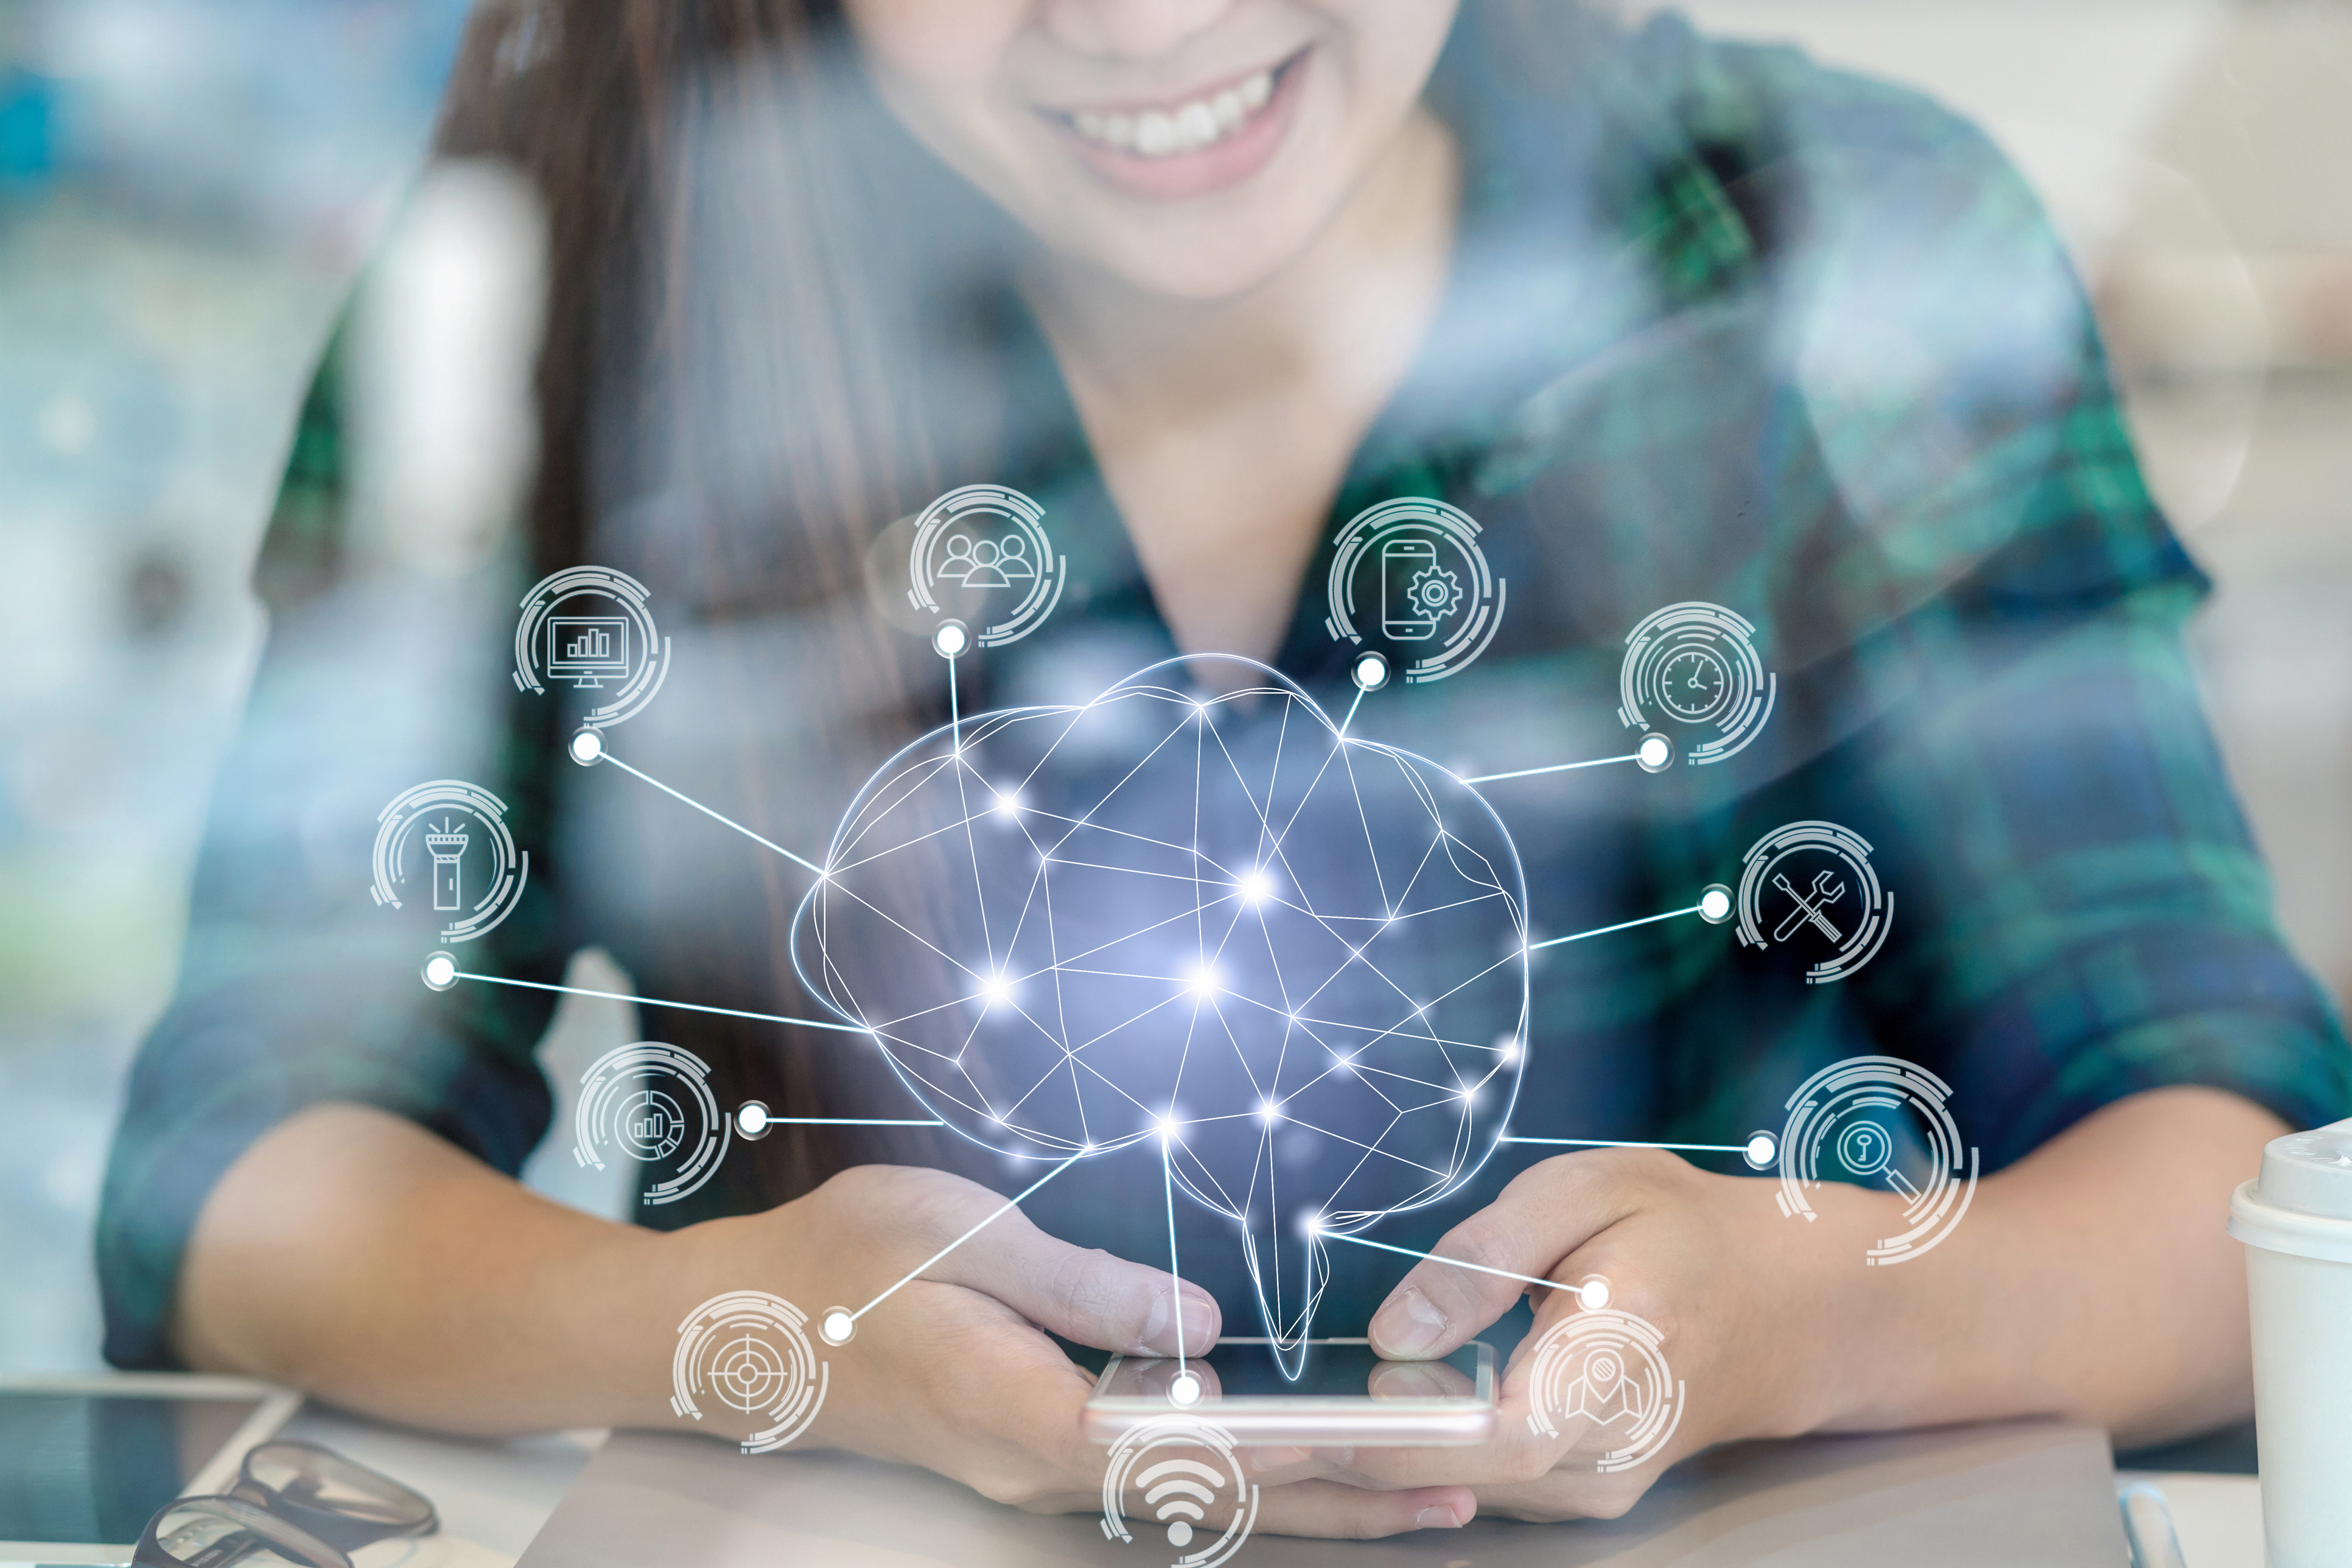 Polygonal brain shape of an artificial intelligence with various icon of smart city Internet of Things Technology over Asian businesswoman hand using the smart mobile phone,AI and business IOT concept, retouch with new product